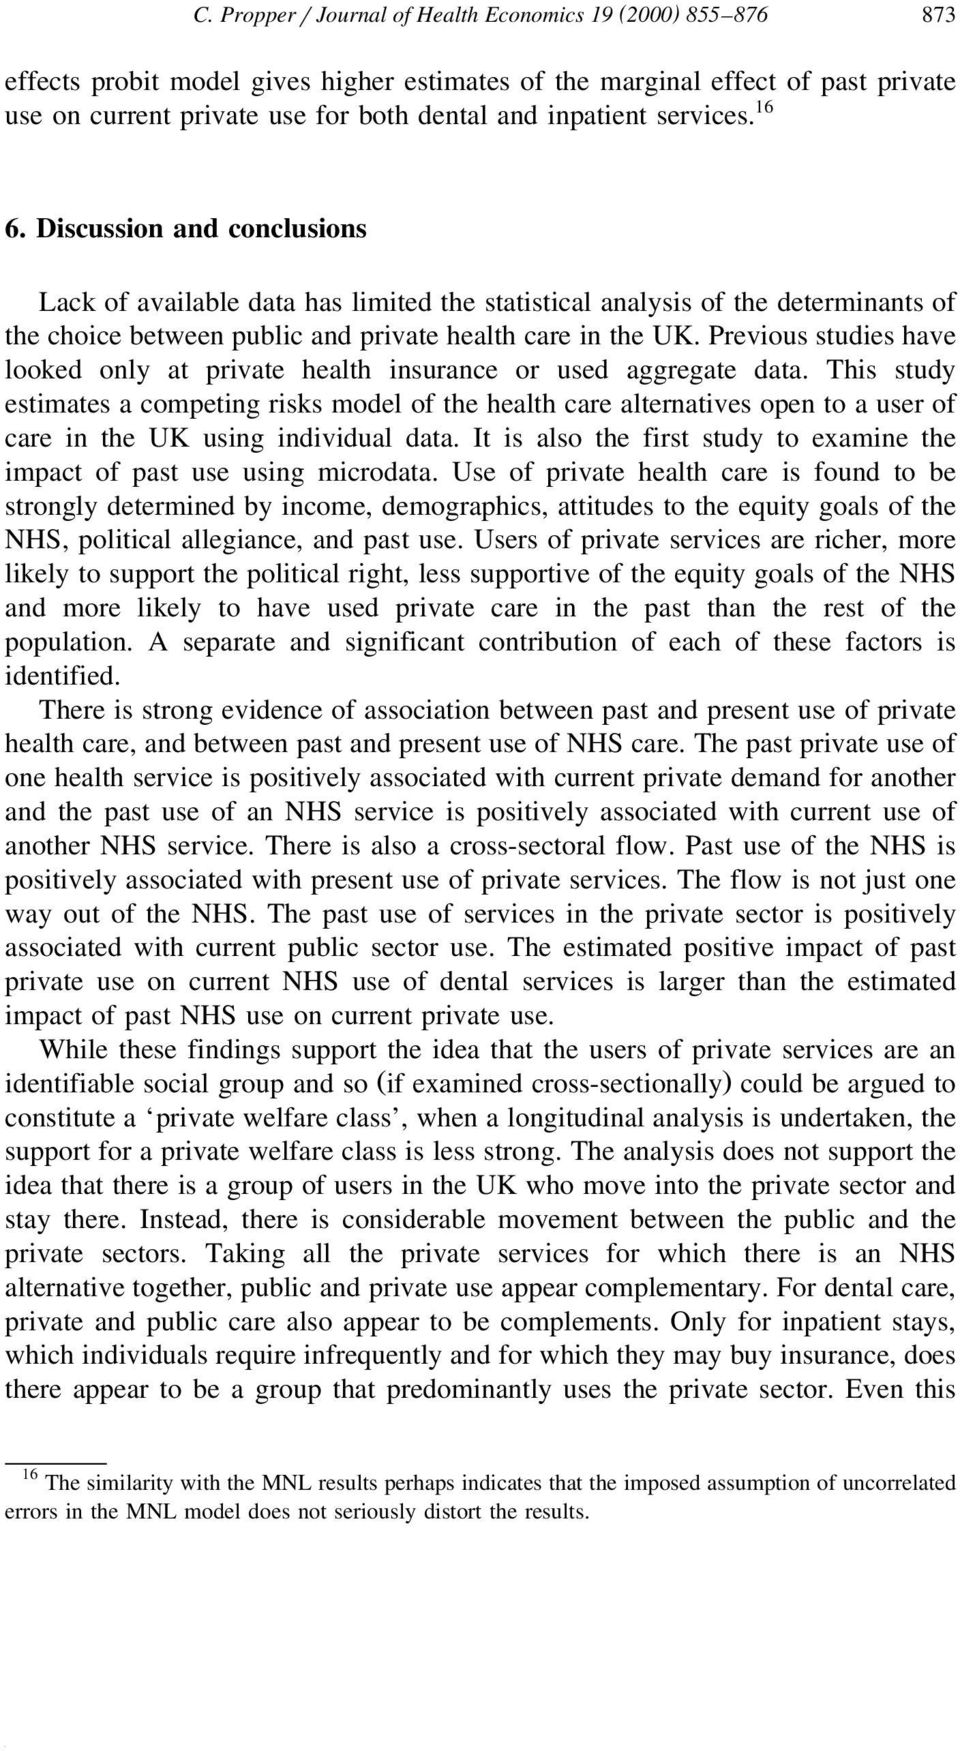 Dscusson and conclusons Lack of avalable data has lmted the statstcal analyss of the determnants of the choce between publc and prvate health care n the UK.